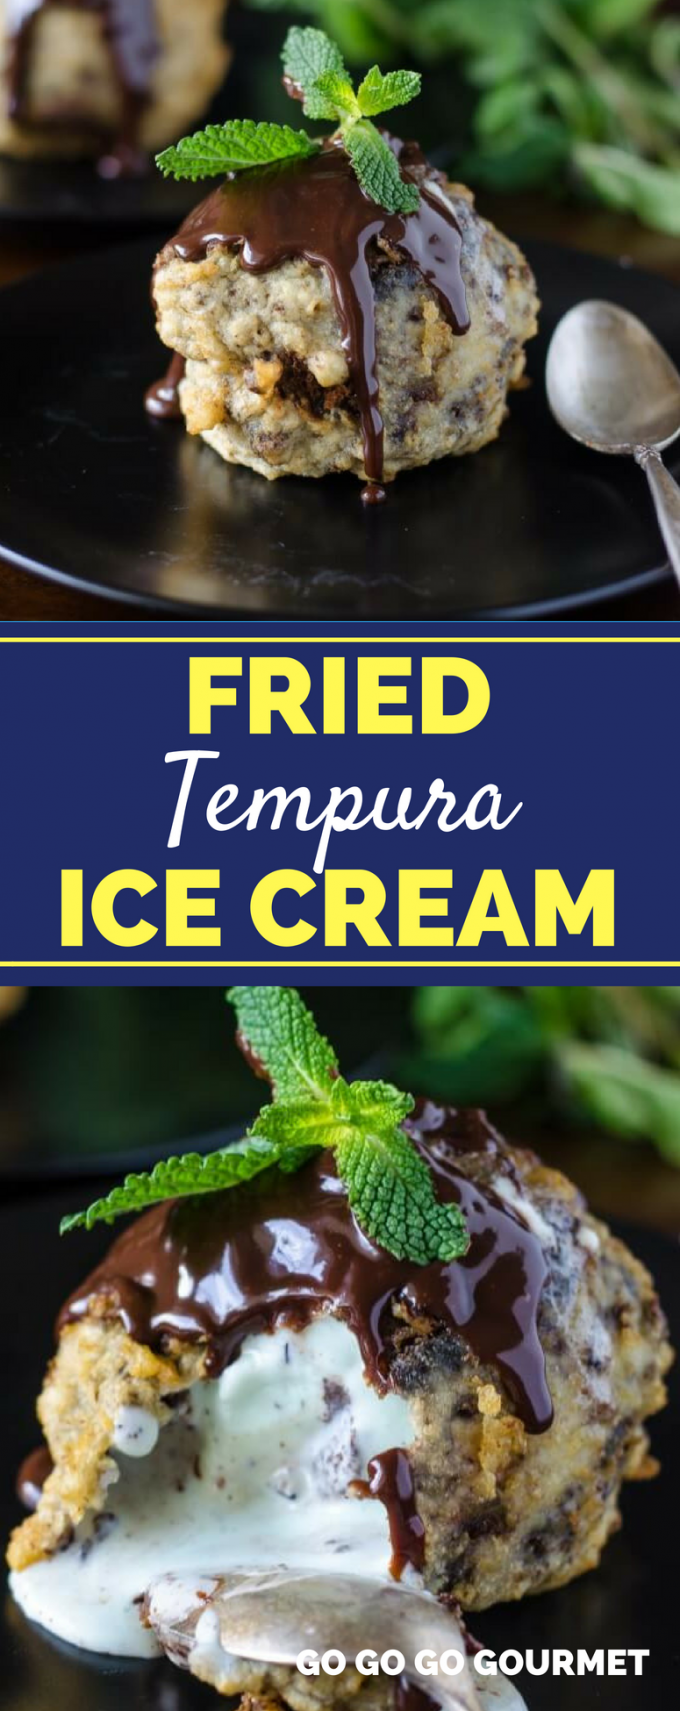 Fried ice cream is my favorite dessert to order at a Mexican restaurant. But this easy Fried Tempura Ice Cream recipe with Mint Chocolate Truffles is a homemade, no fry dessert that will keep you coming back for more! #easyfriedicecreamrecipe #friedtempuraicecream #homemadedesserts #gogogogourmet via @gogogogourmet